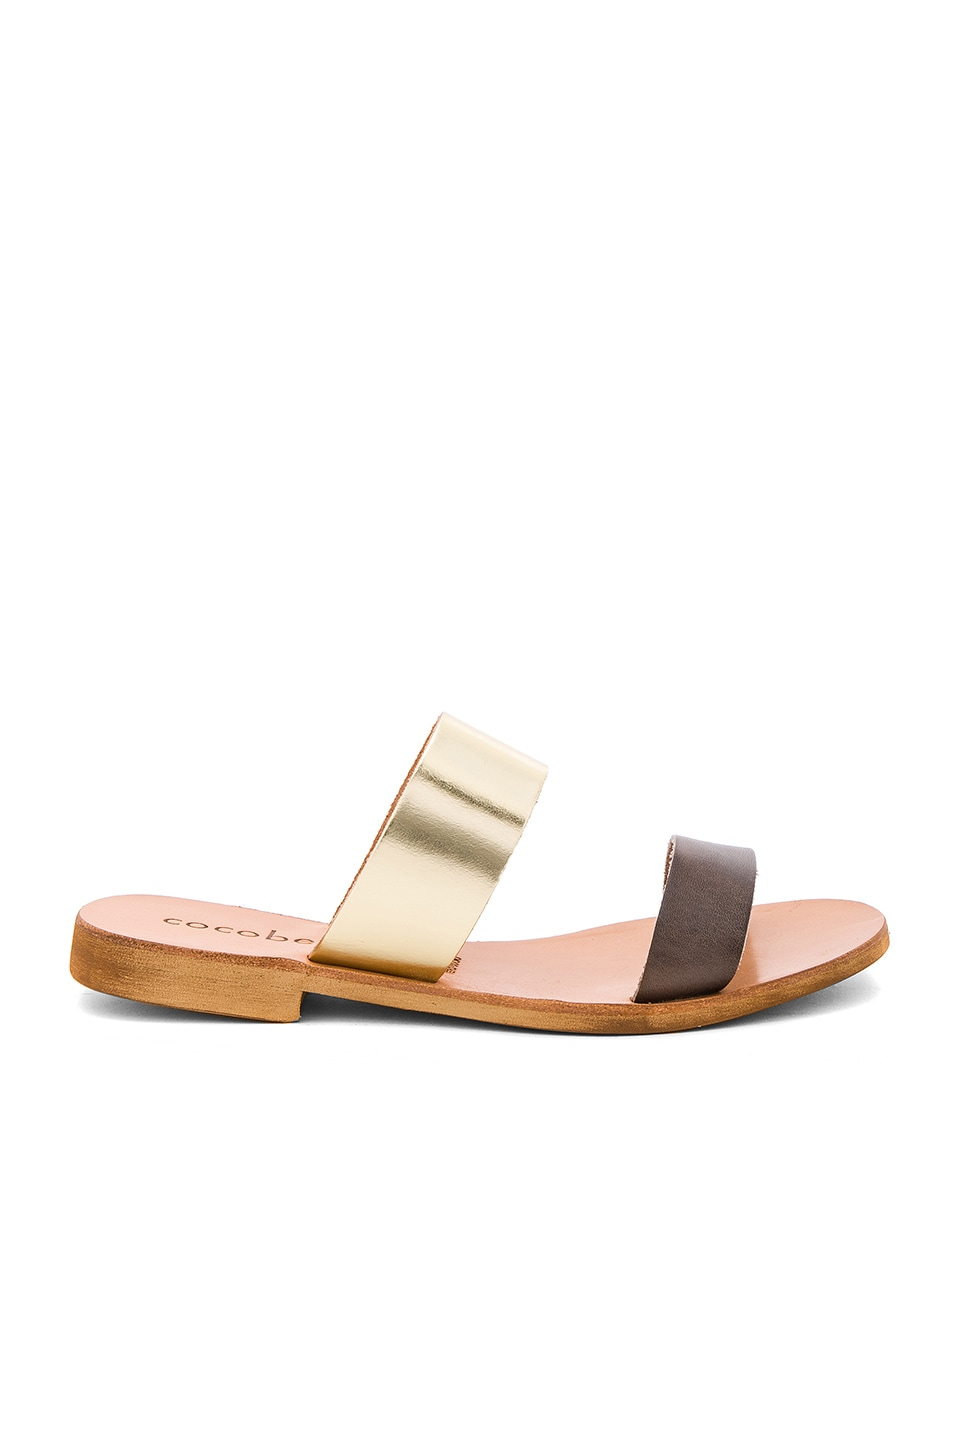 Leather Slide Sandals by Cocobelle